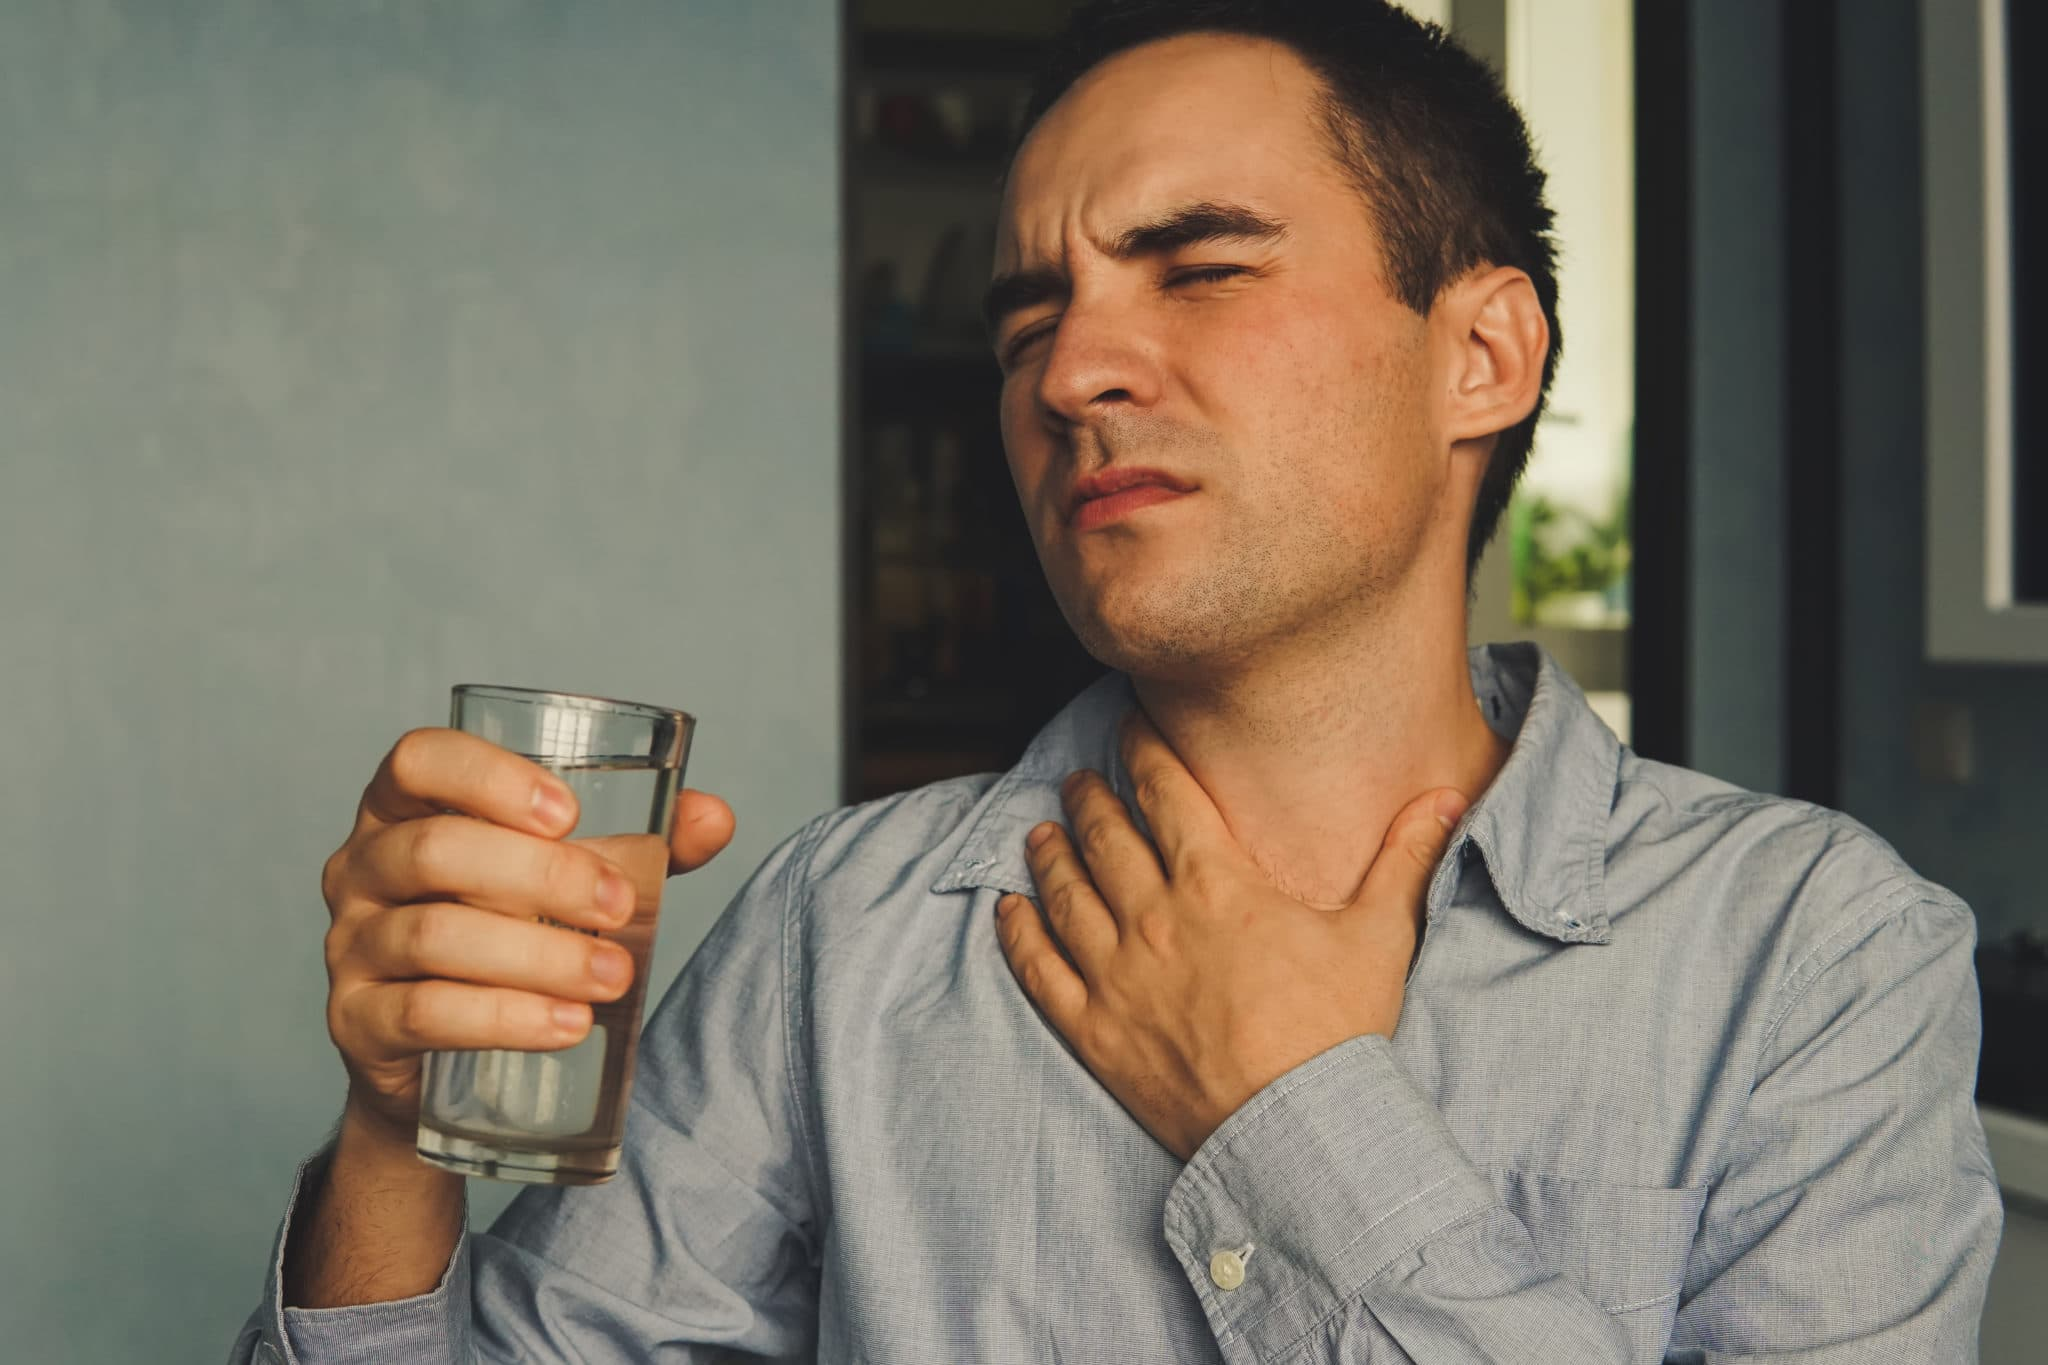 A parched throat and a glass of water in hand. Handsome guy in casual clothes is holding a glass of water and touching his throat while sitting on couch at home.